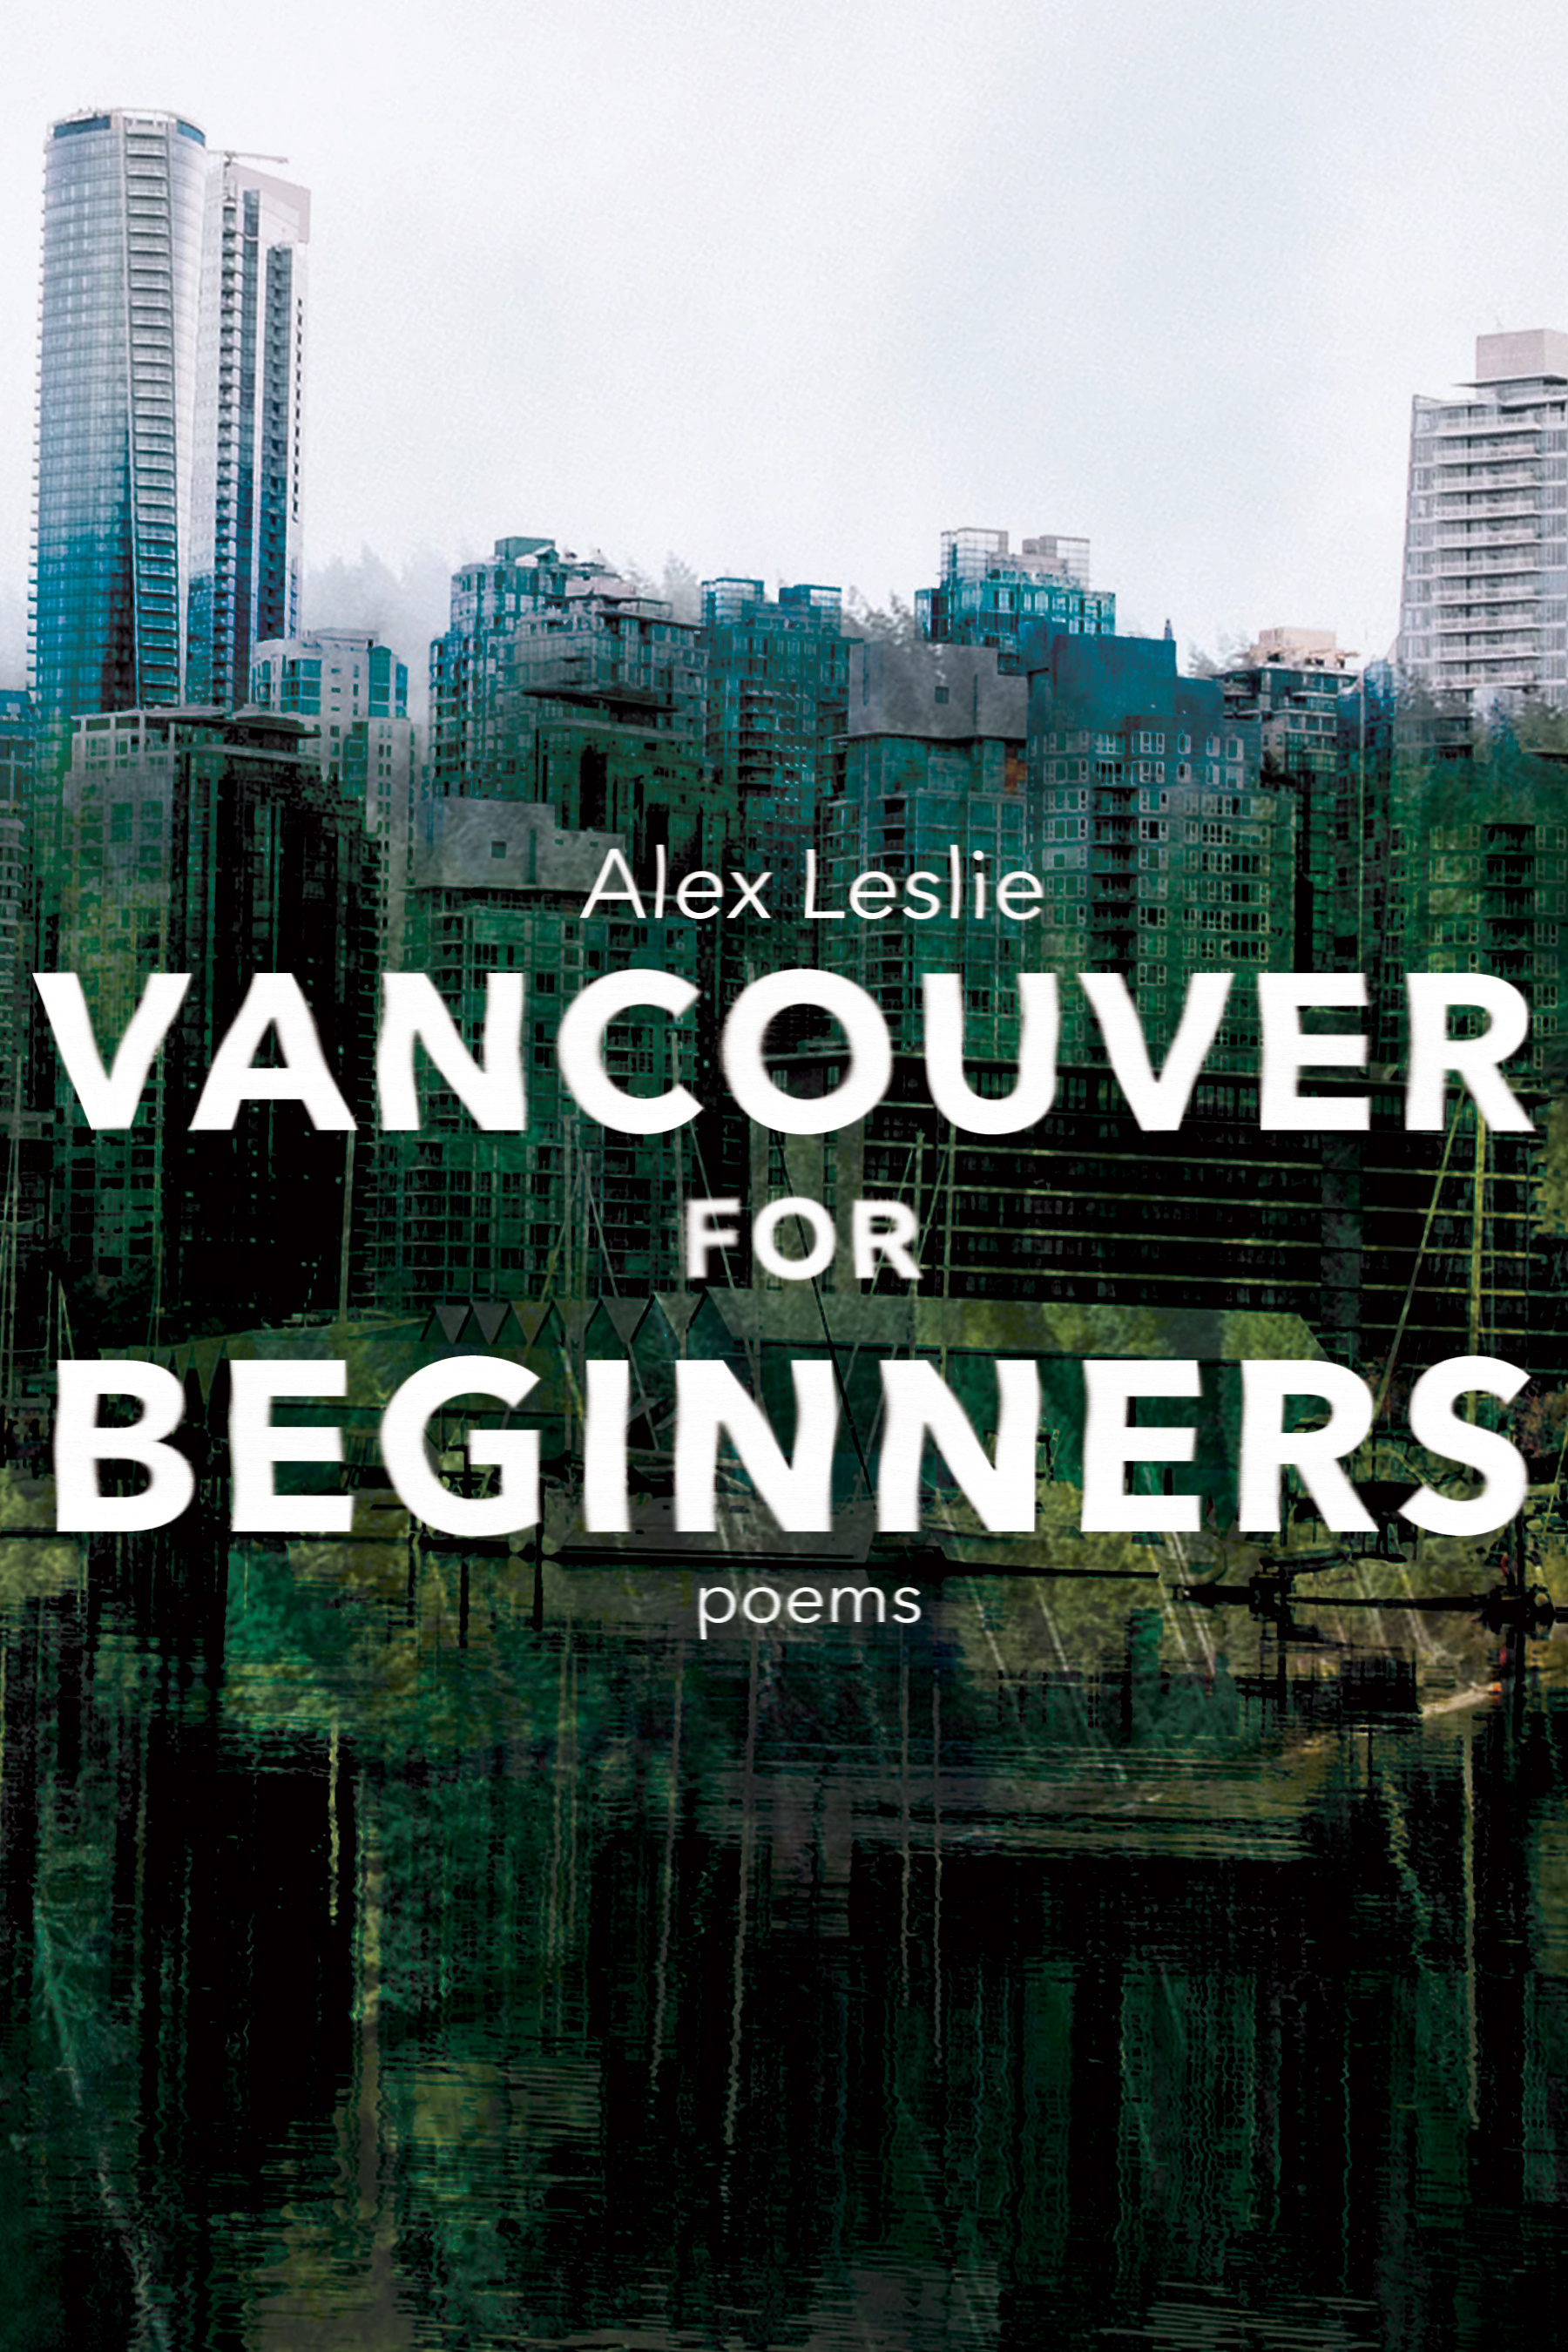 Vancouver for Beginners (Bool*hug, 2019)